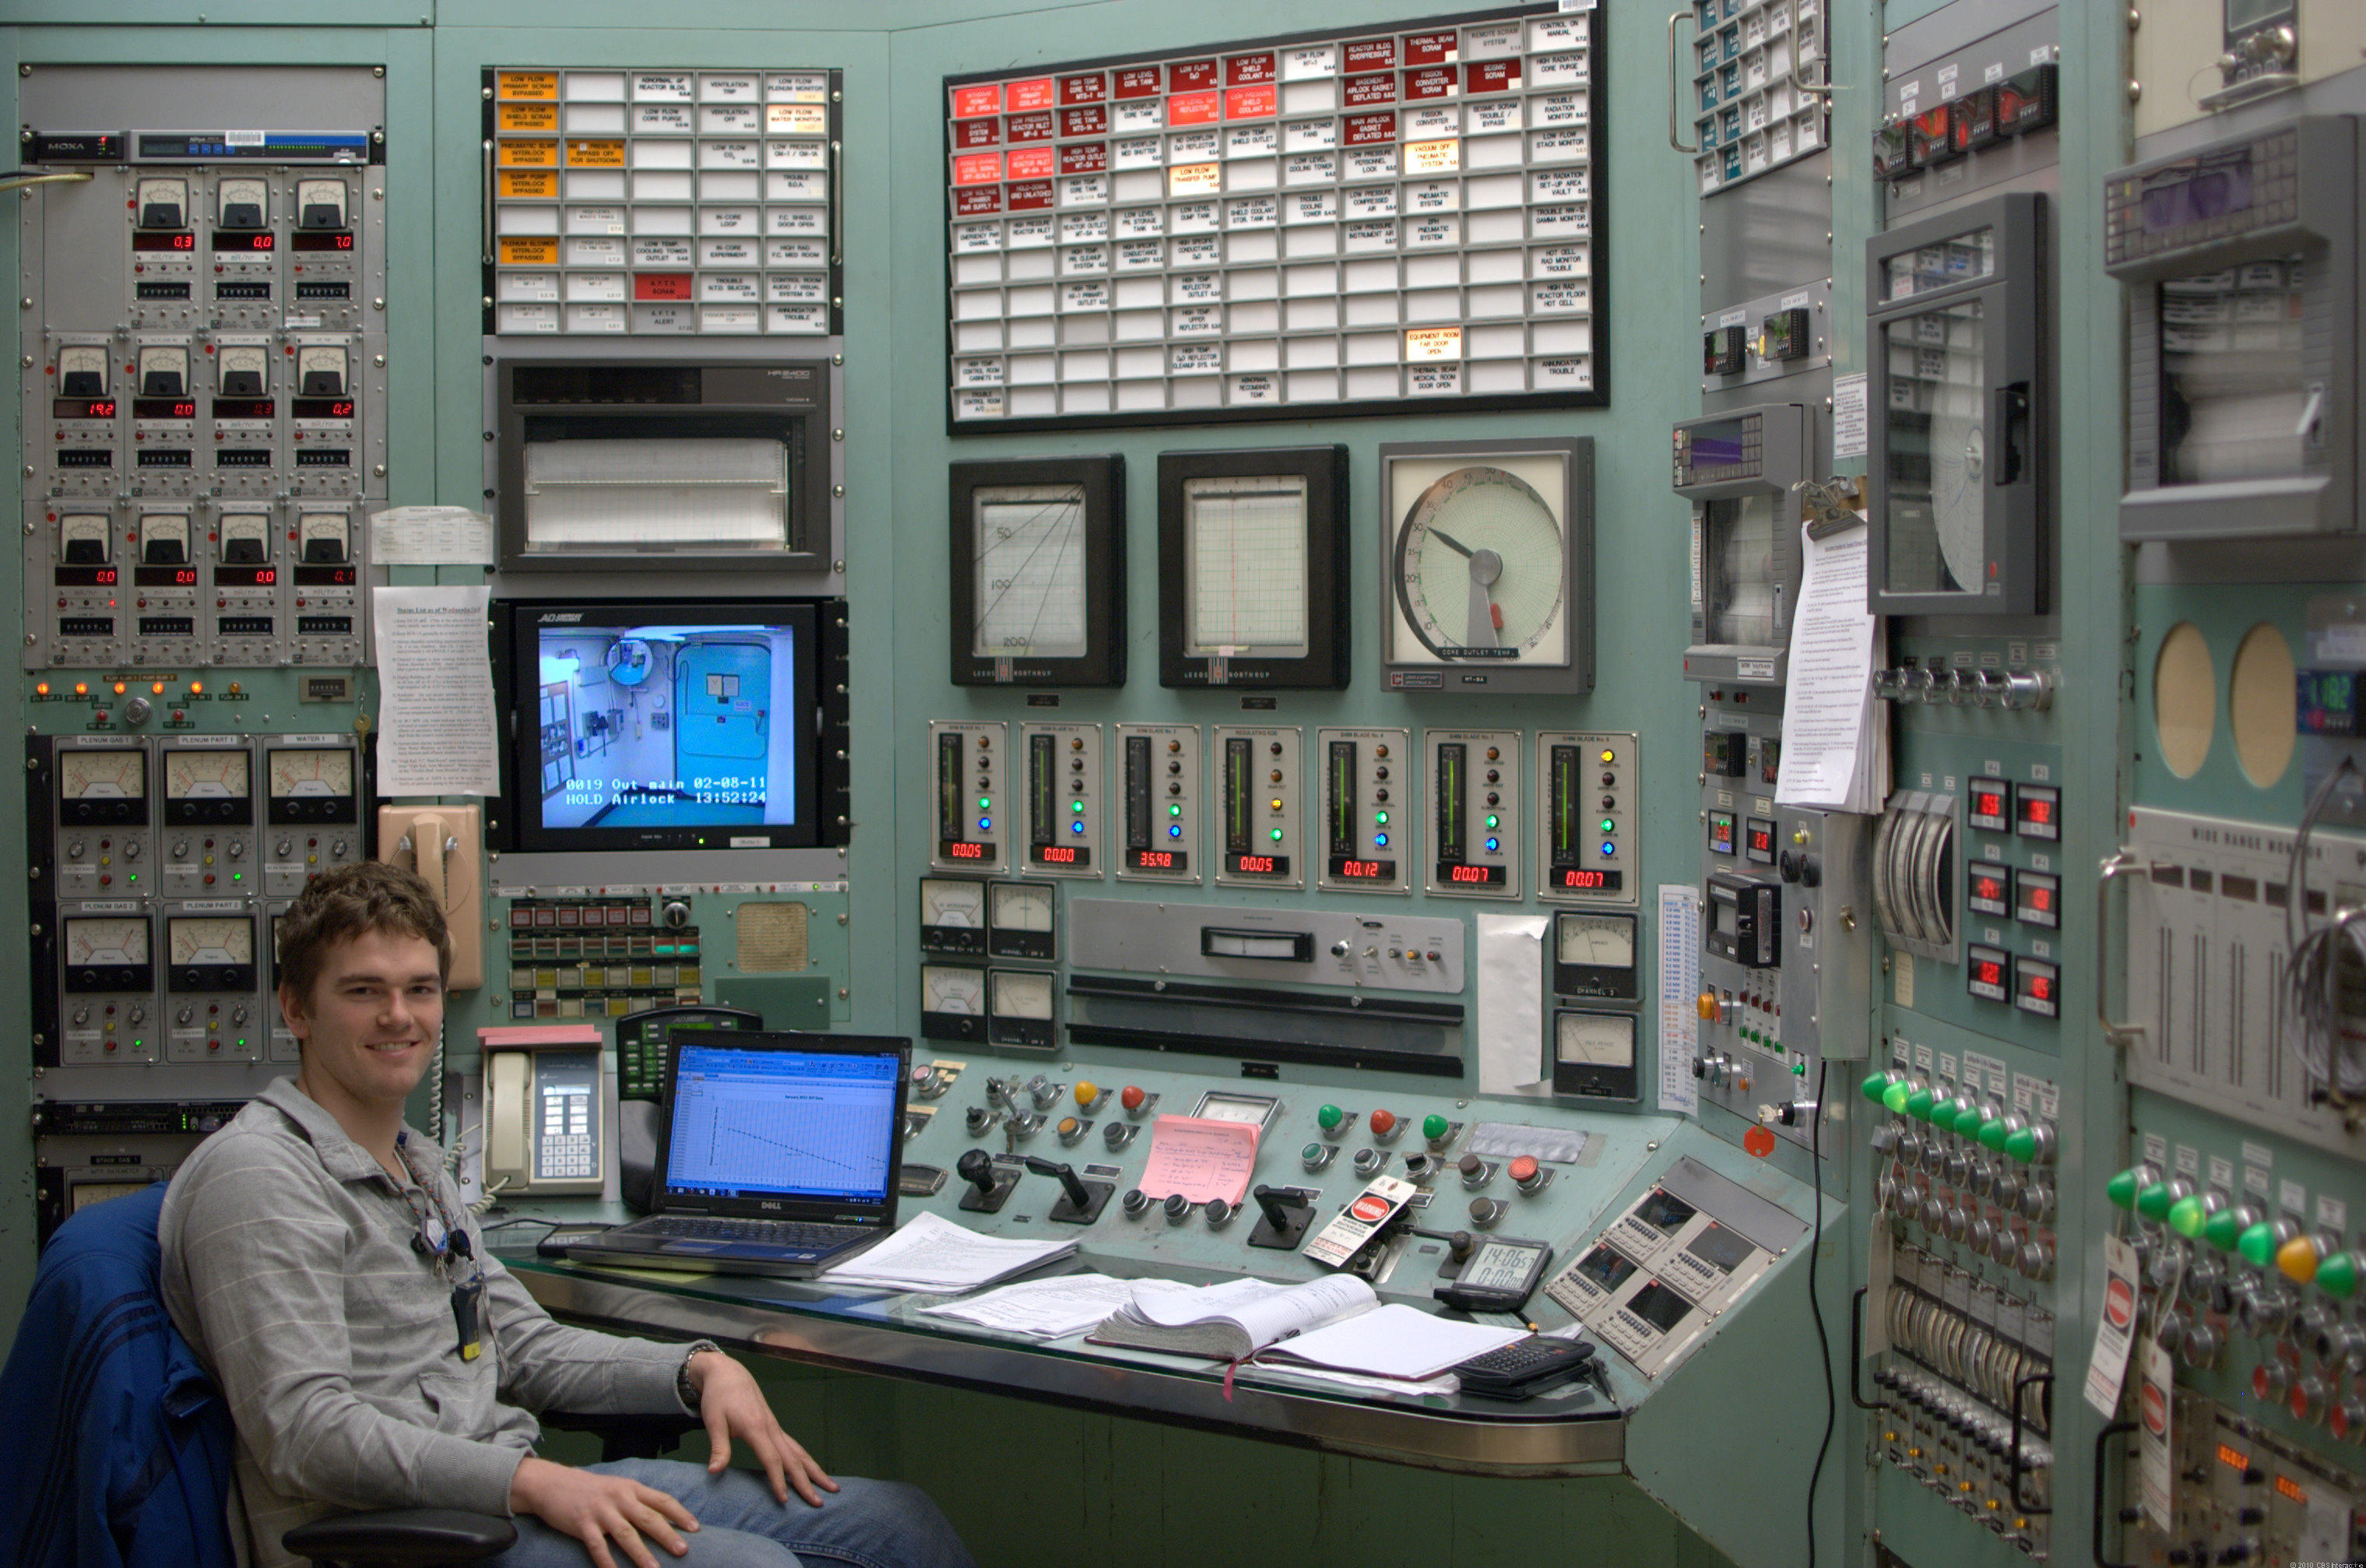 Control Room Mit S Nuclear Reactor Pictures Cbs News